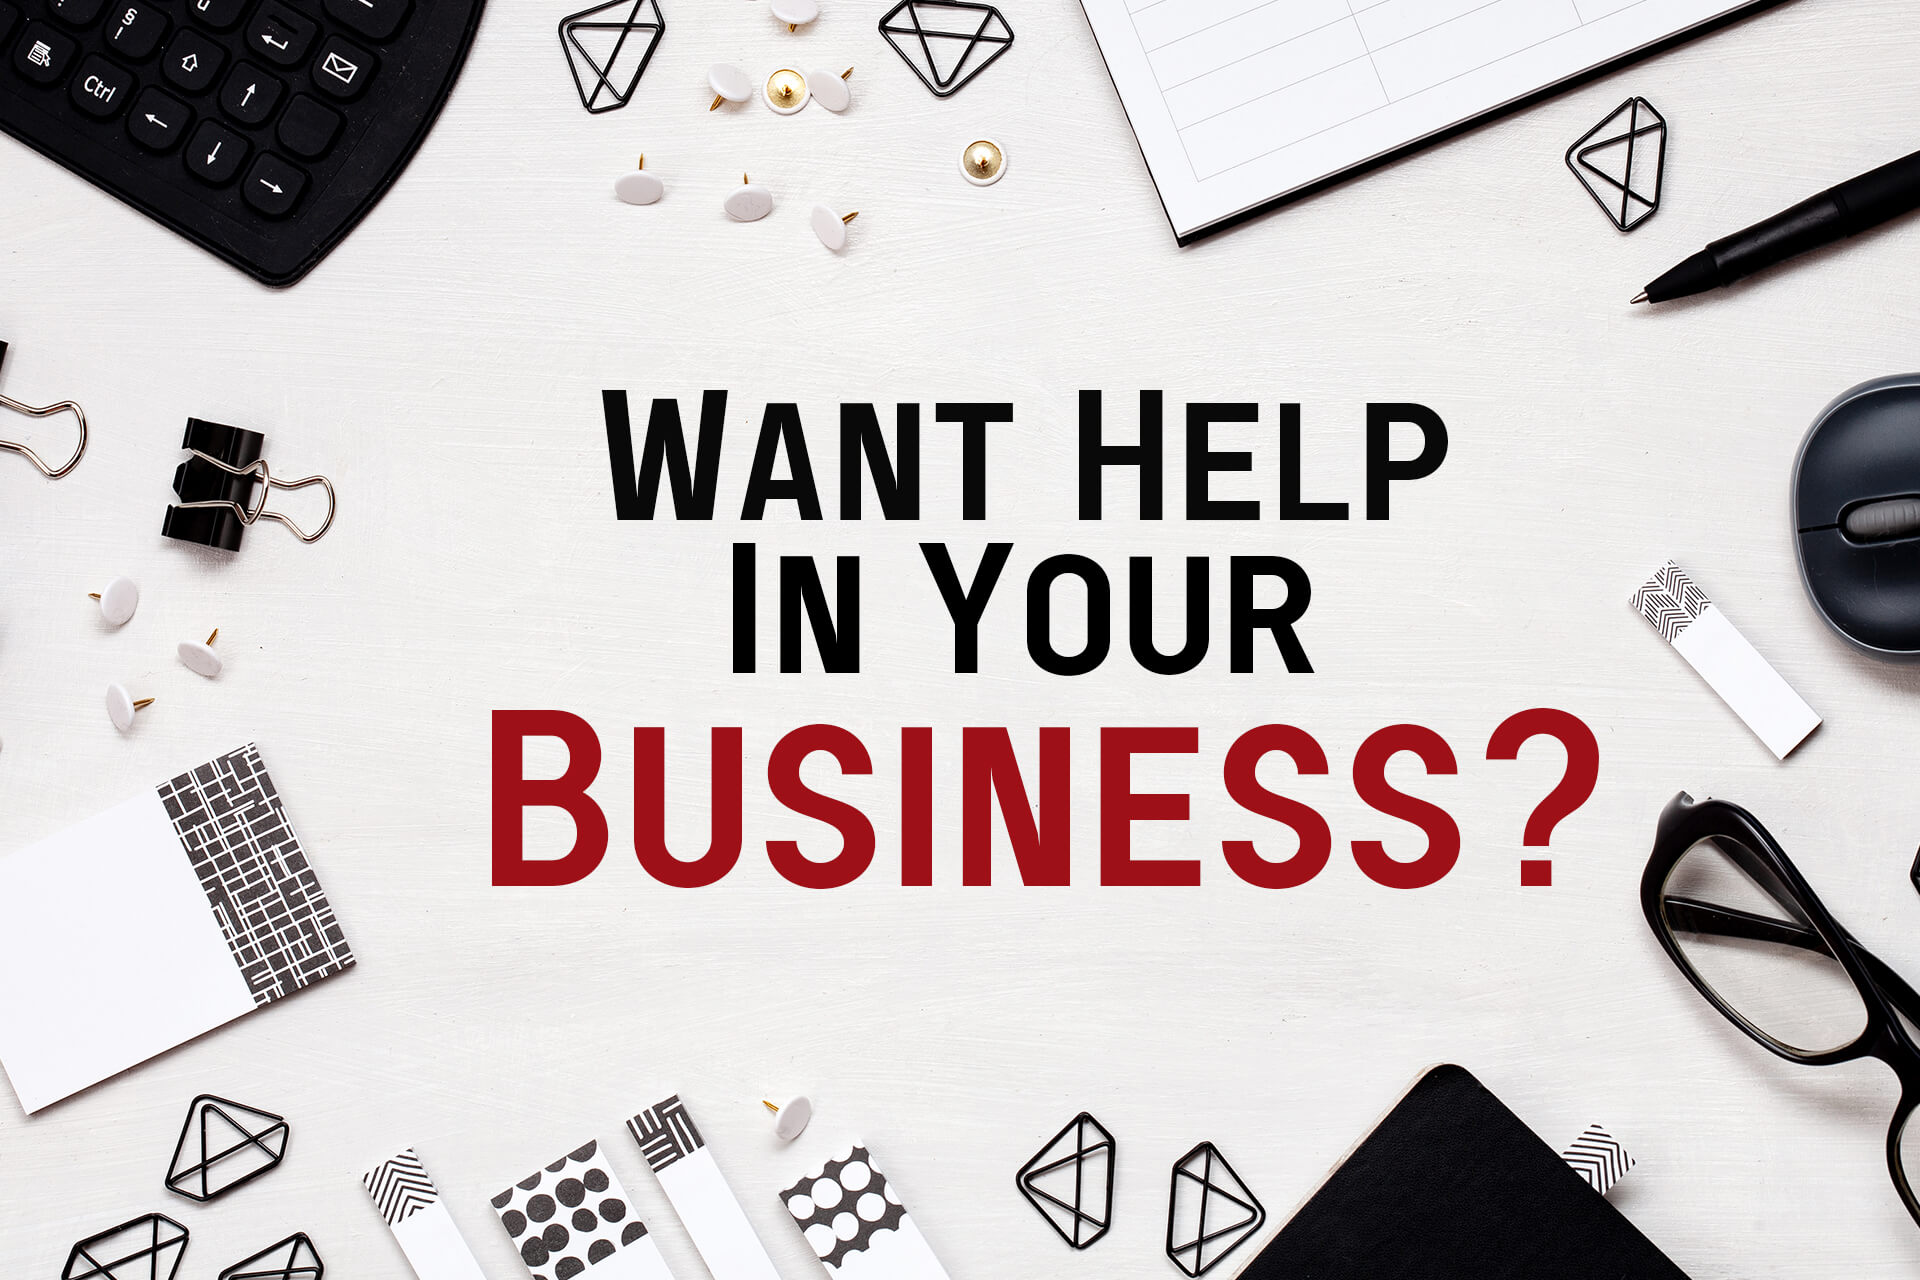 Want Help In Your Business?